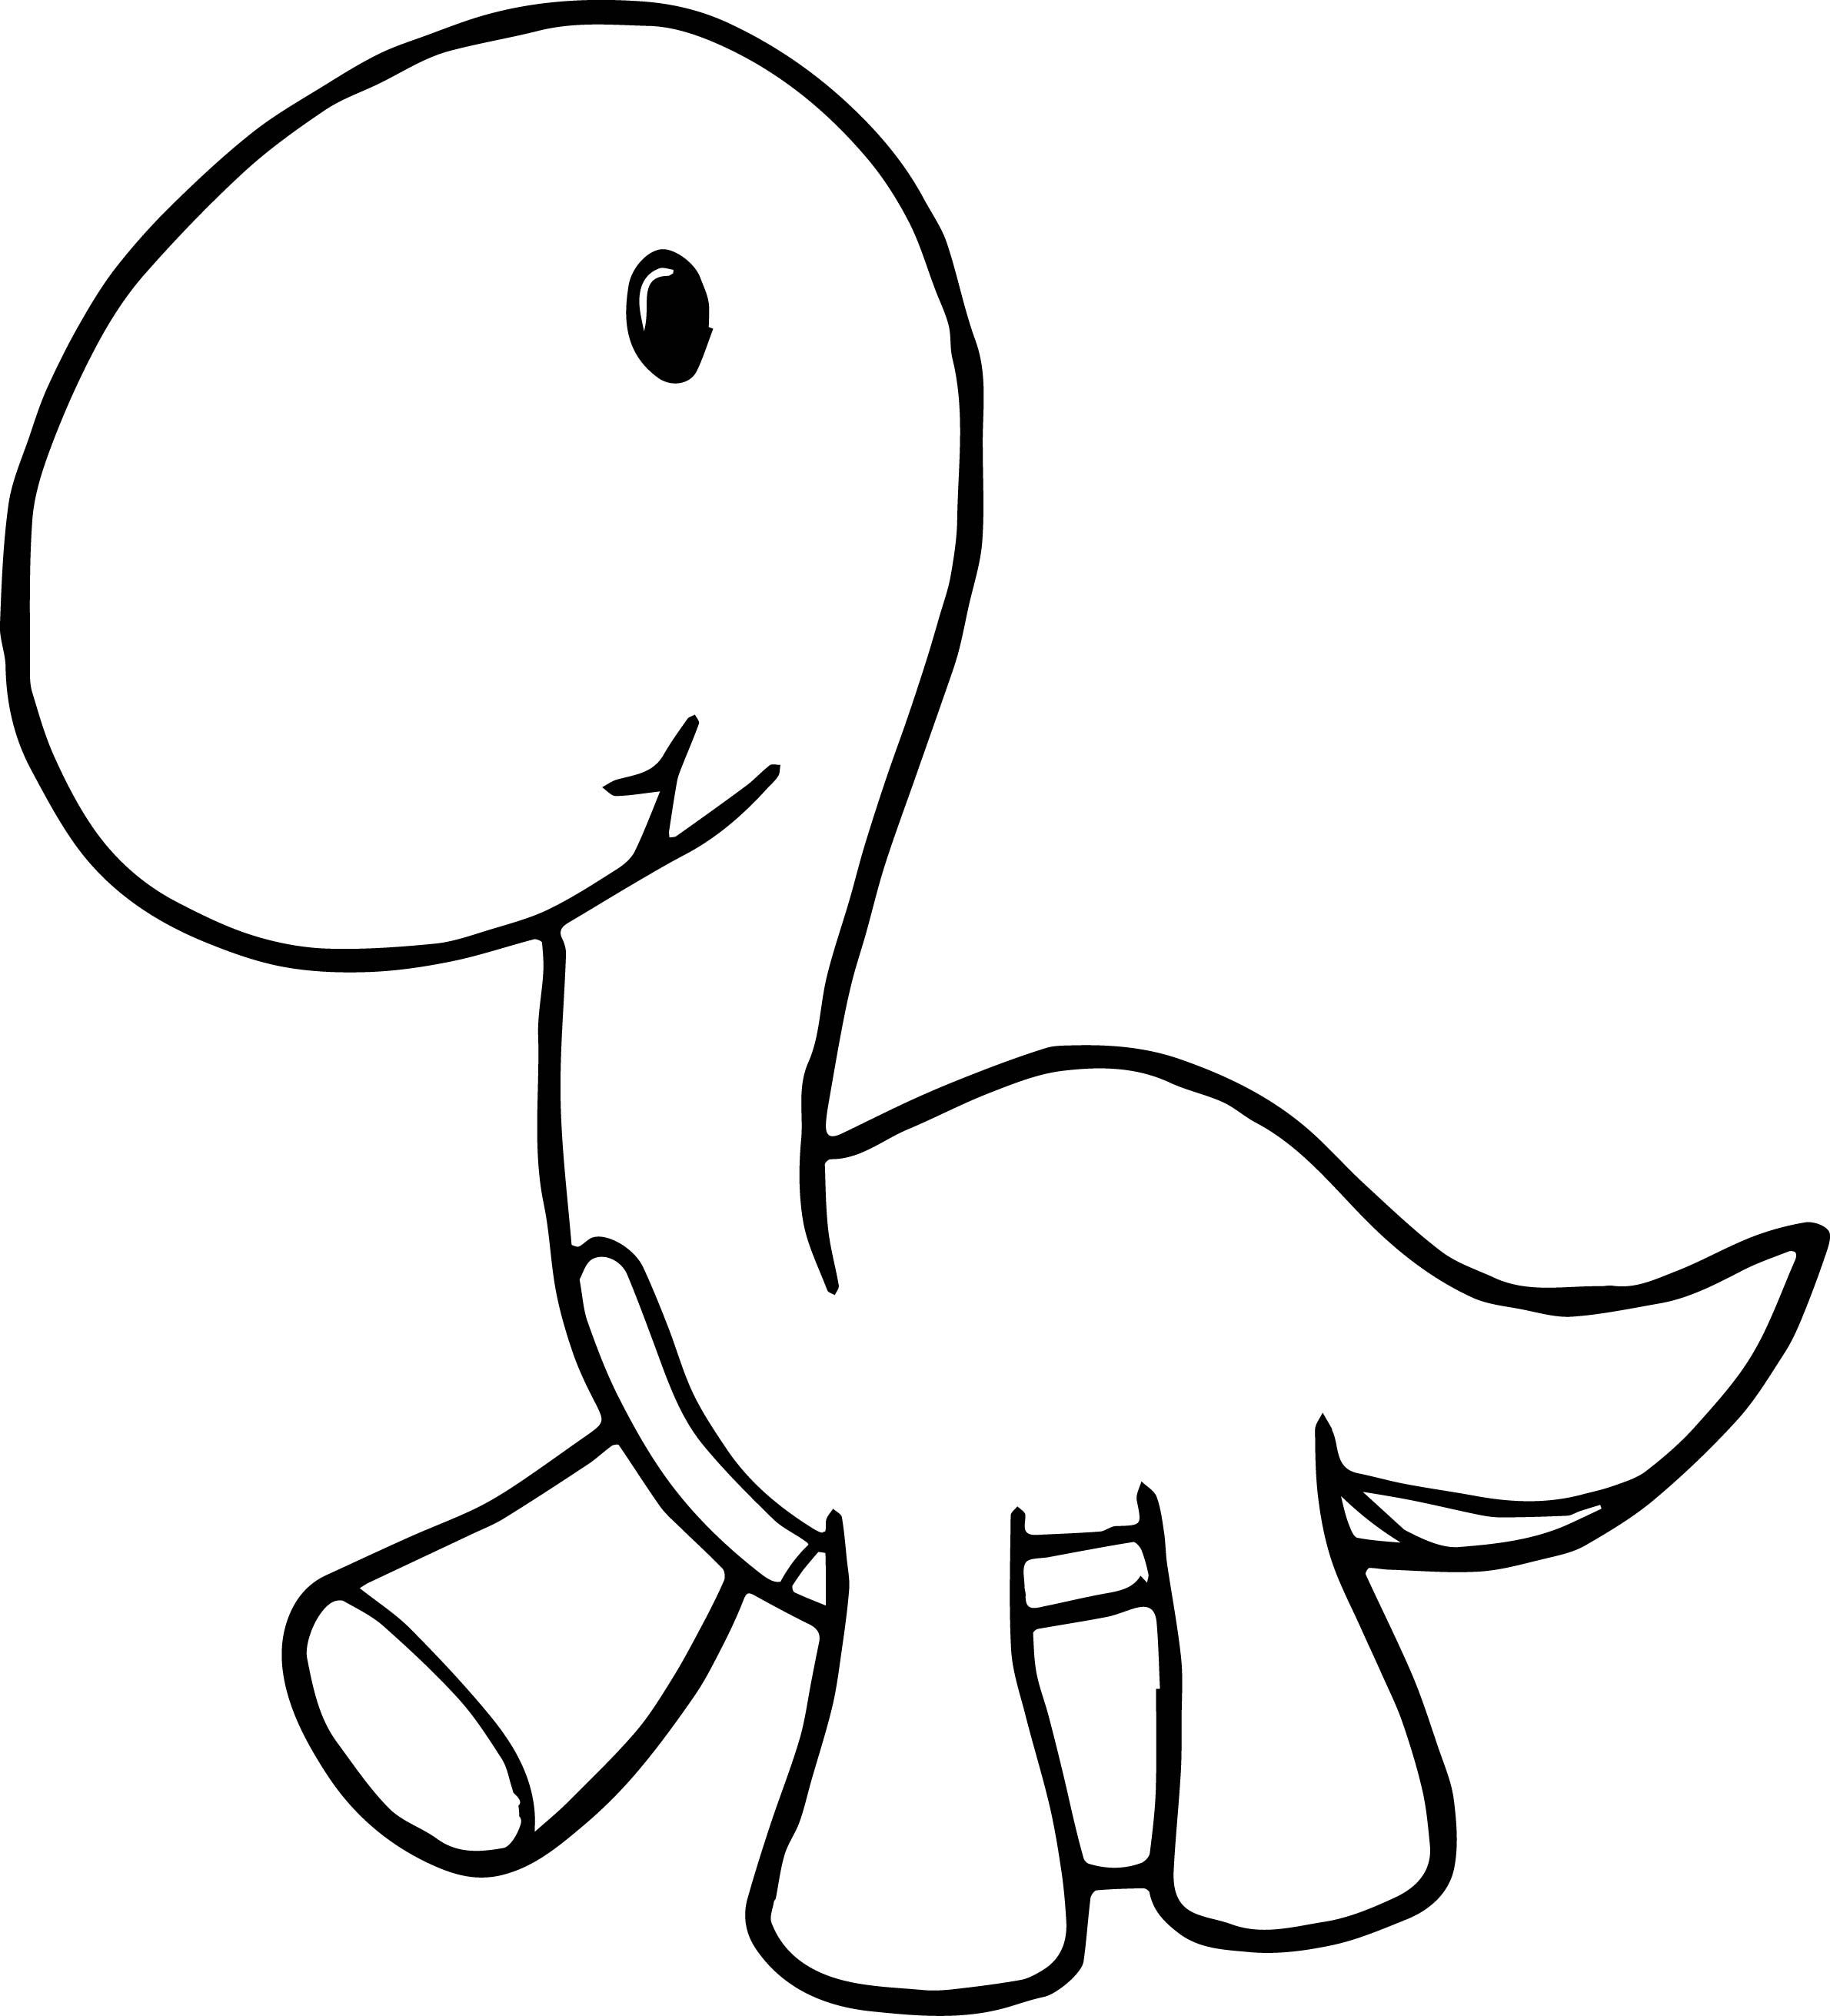 Preschool Dinosaur Coloring Pages Printable Dinosaur Coloring